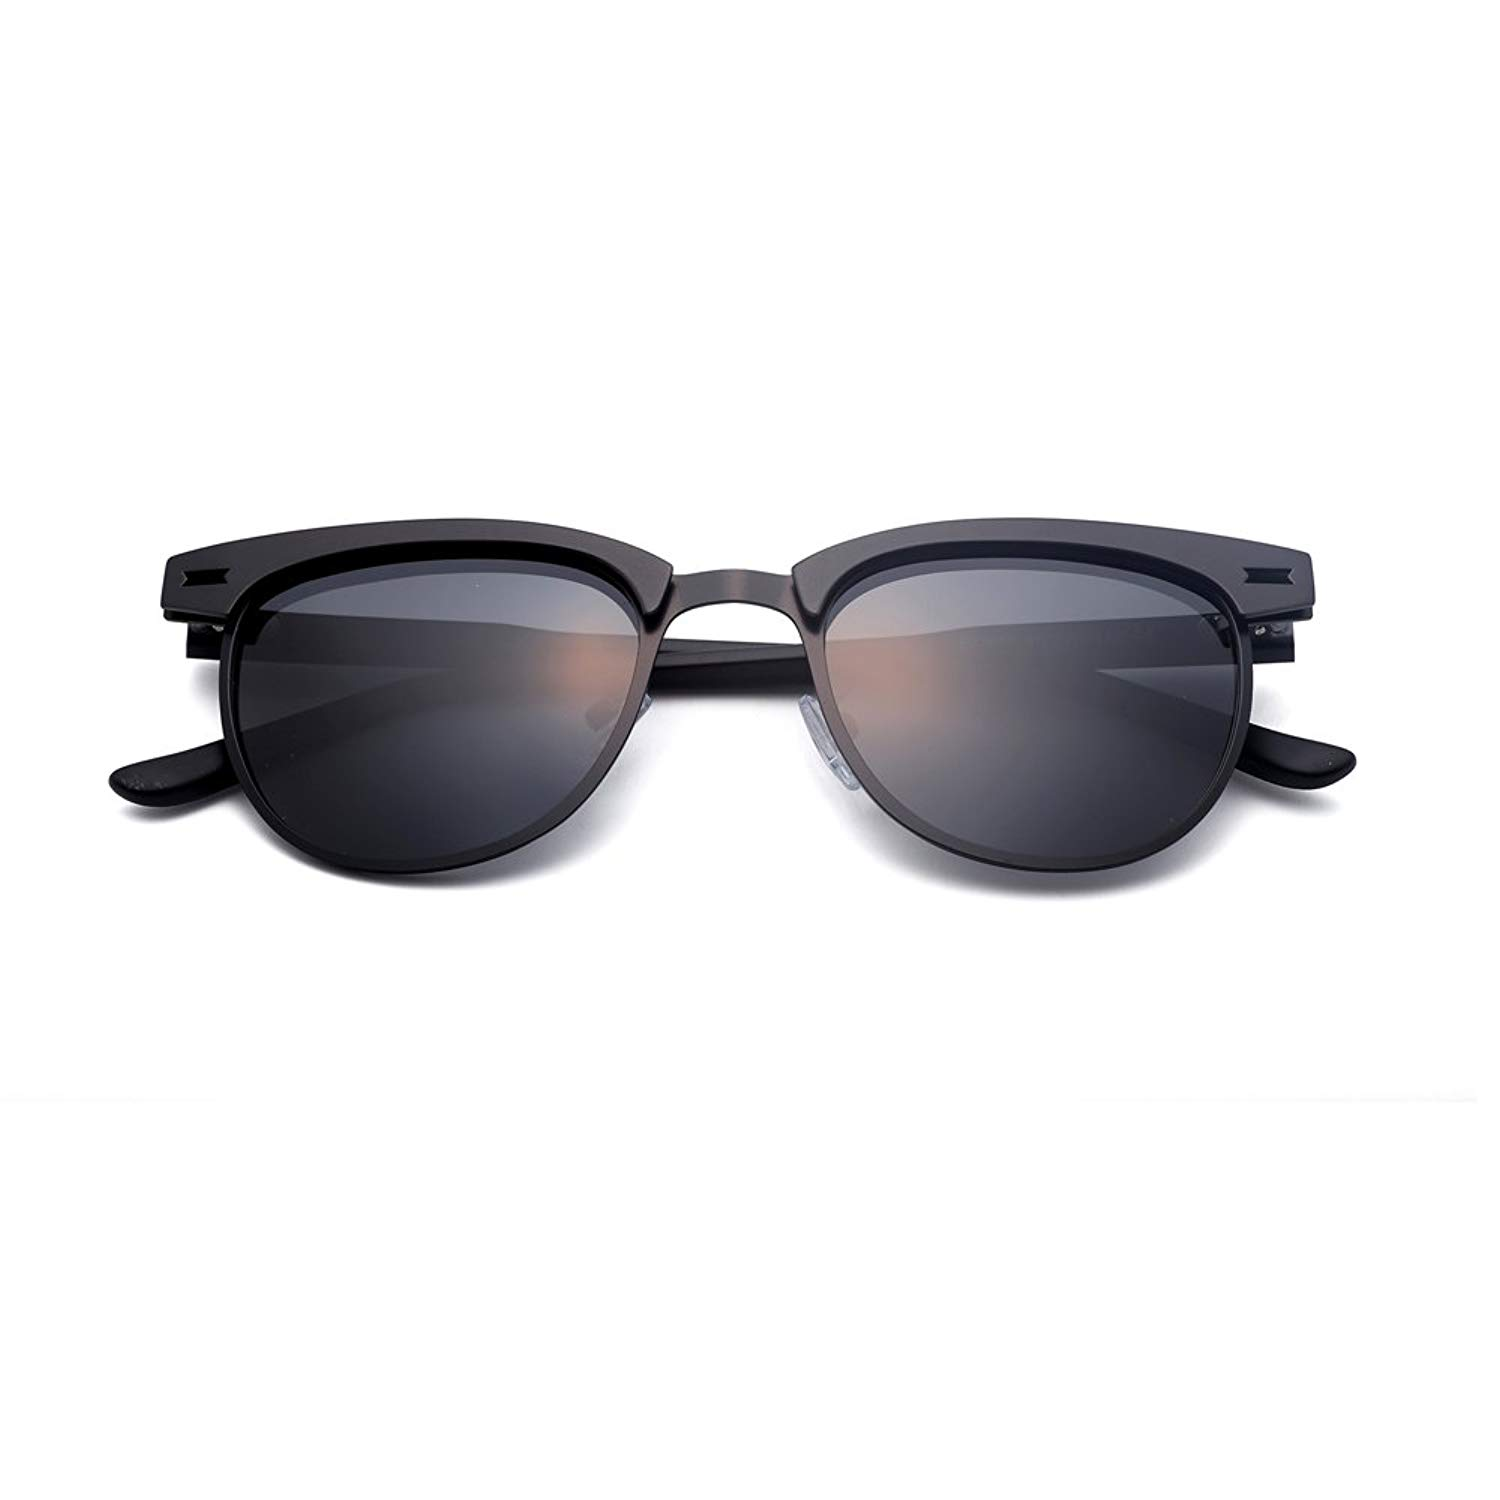 a5f085398 Get Quotations · C&CHAI Polarized Unisex Retro Classic Trendy Stylish  SUNGLASSES with Case , UV 400